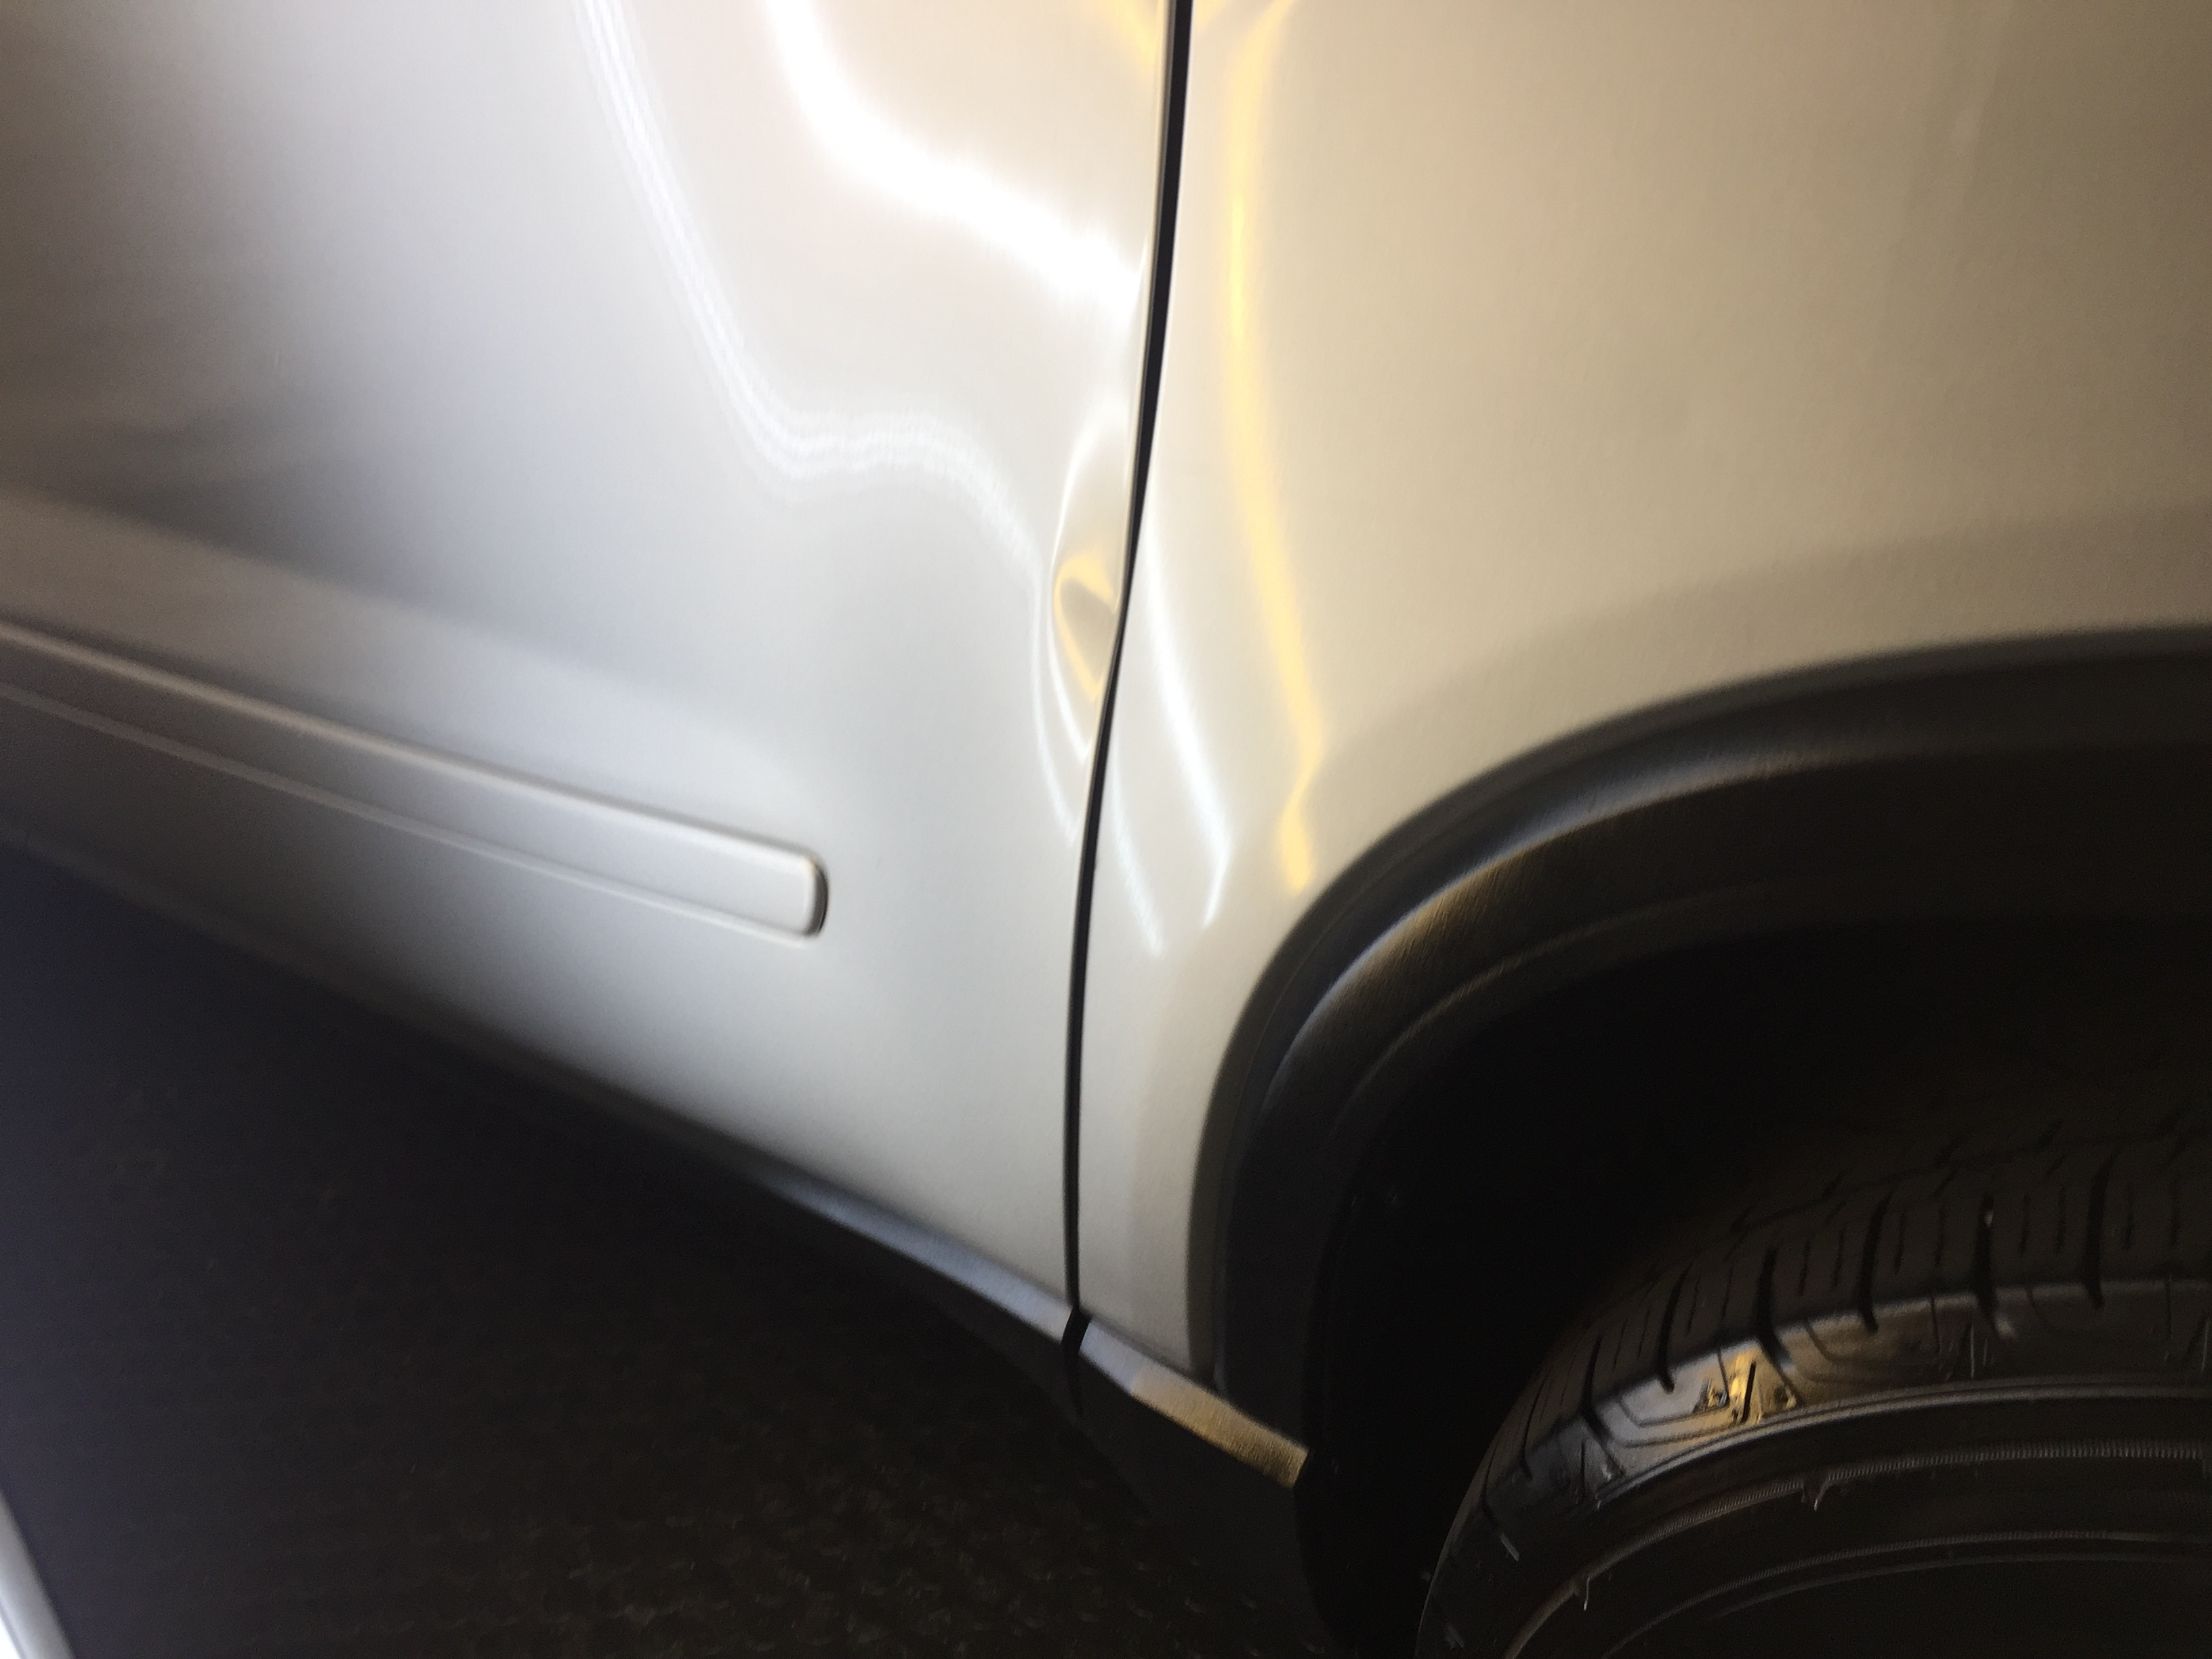 2012 GMC Acadia Dent Removal, Springfield, IL. Major damage in rear quarter, http://217dent.com